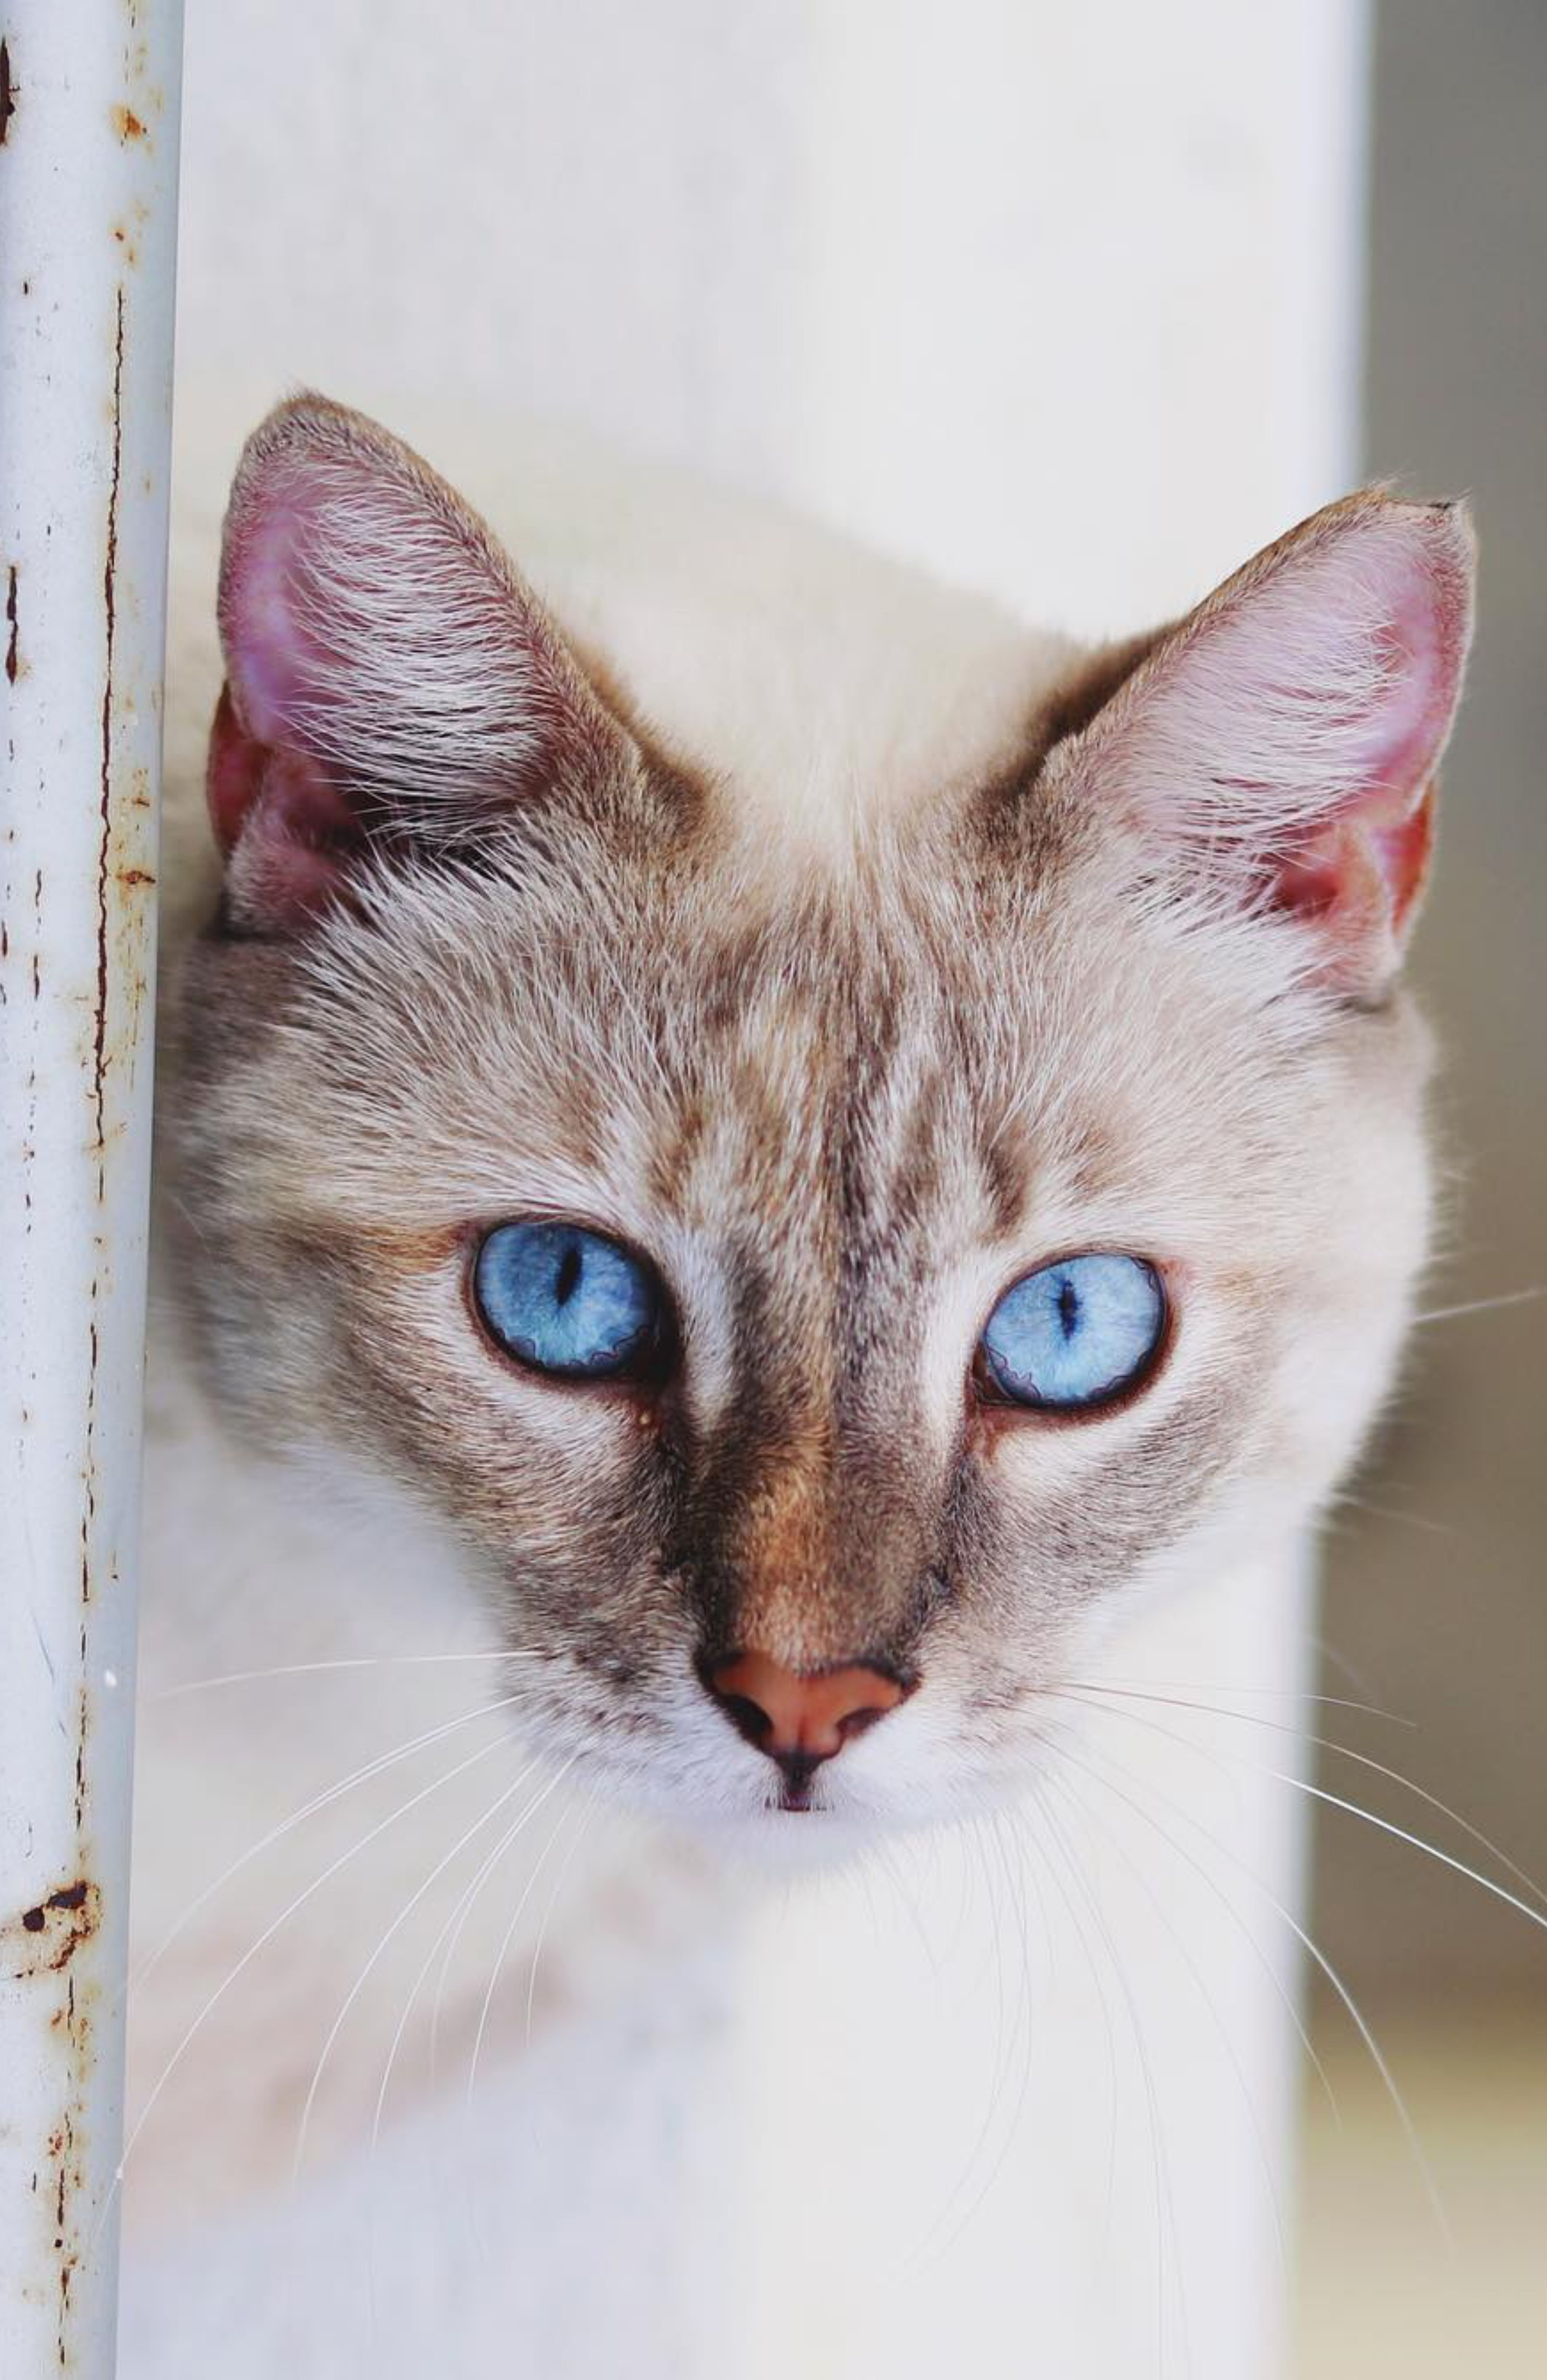 Should FIV-Positive Cats Get Euthanized?